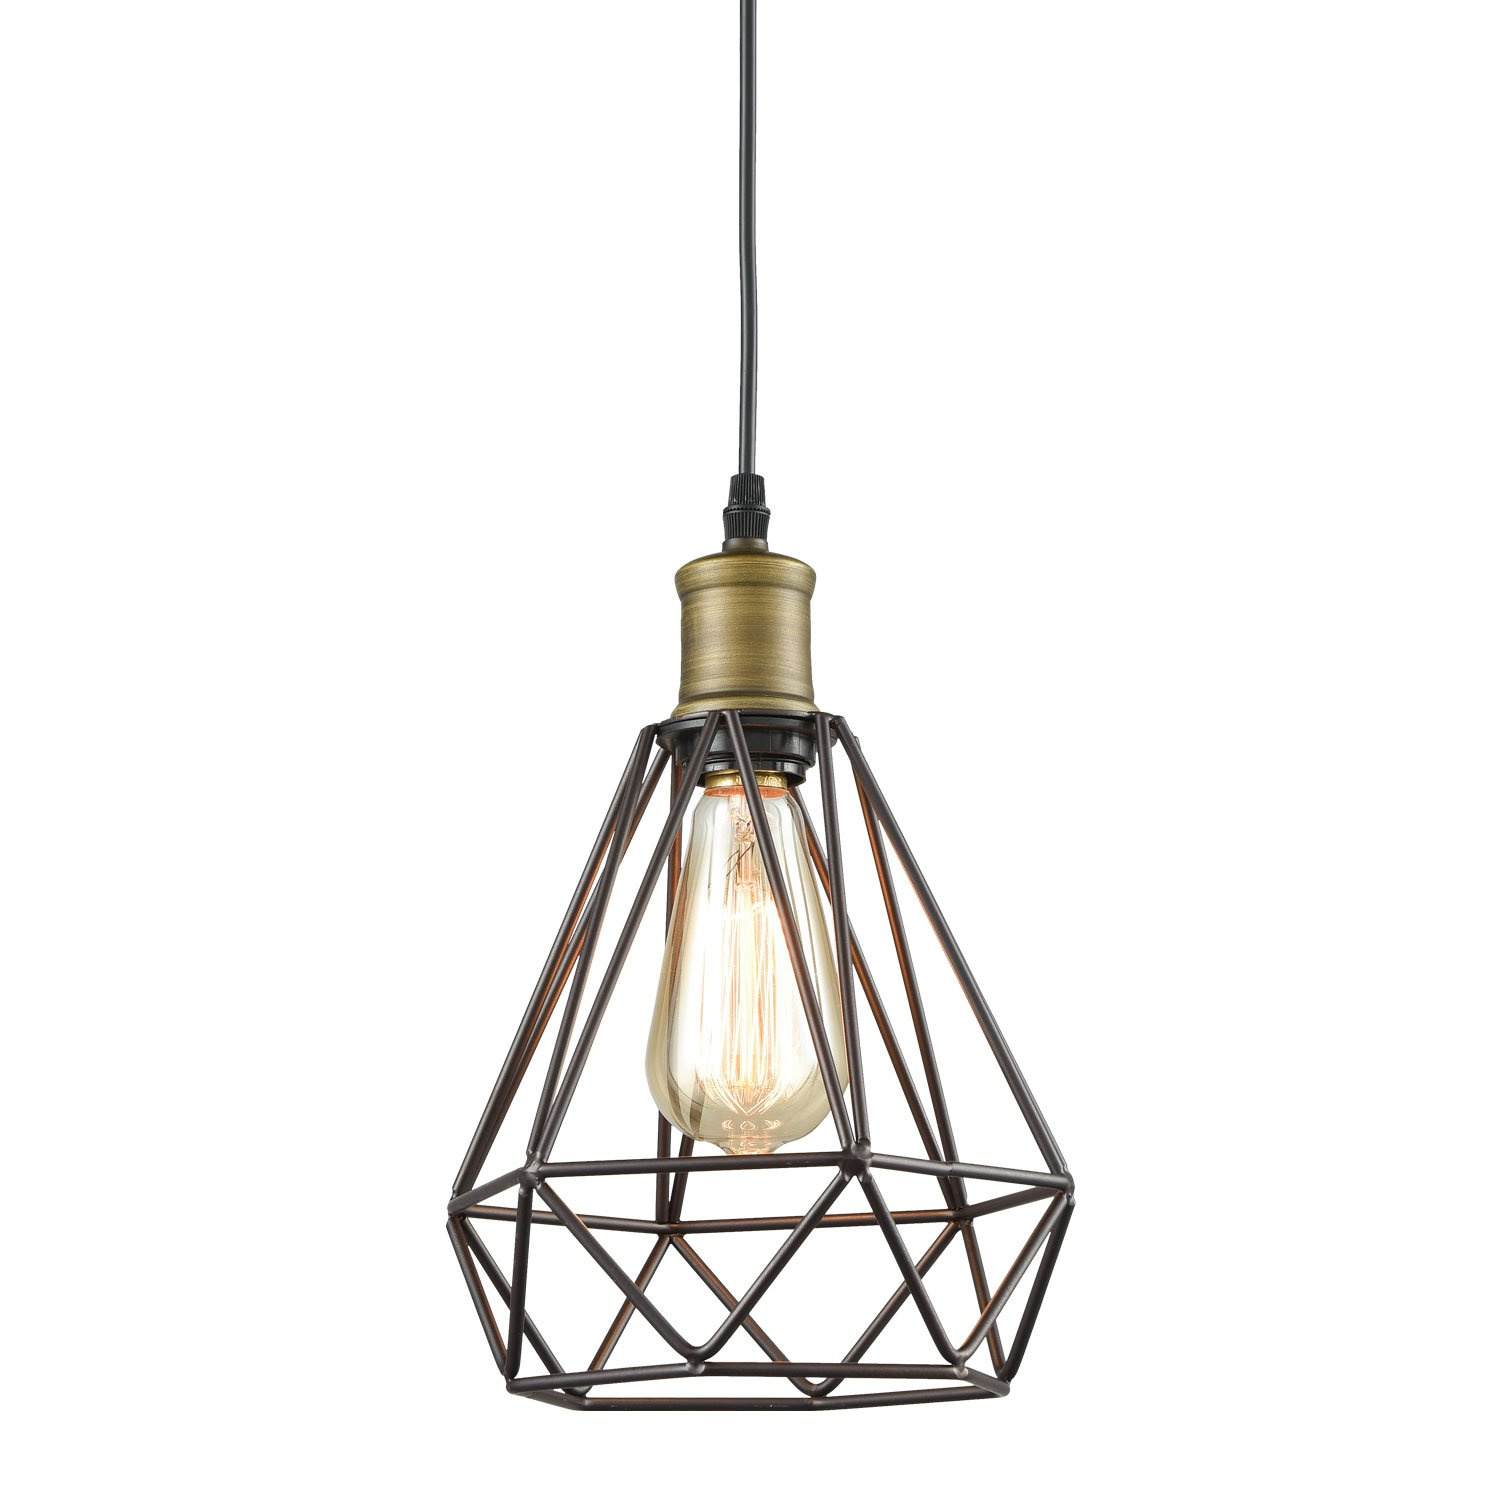 Superieur YOBO Lighting Vintage Oil Rubbed Bronze Polygon Wire Pendant Light Art Deco      Amazon.com